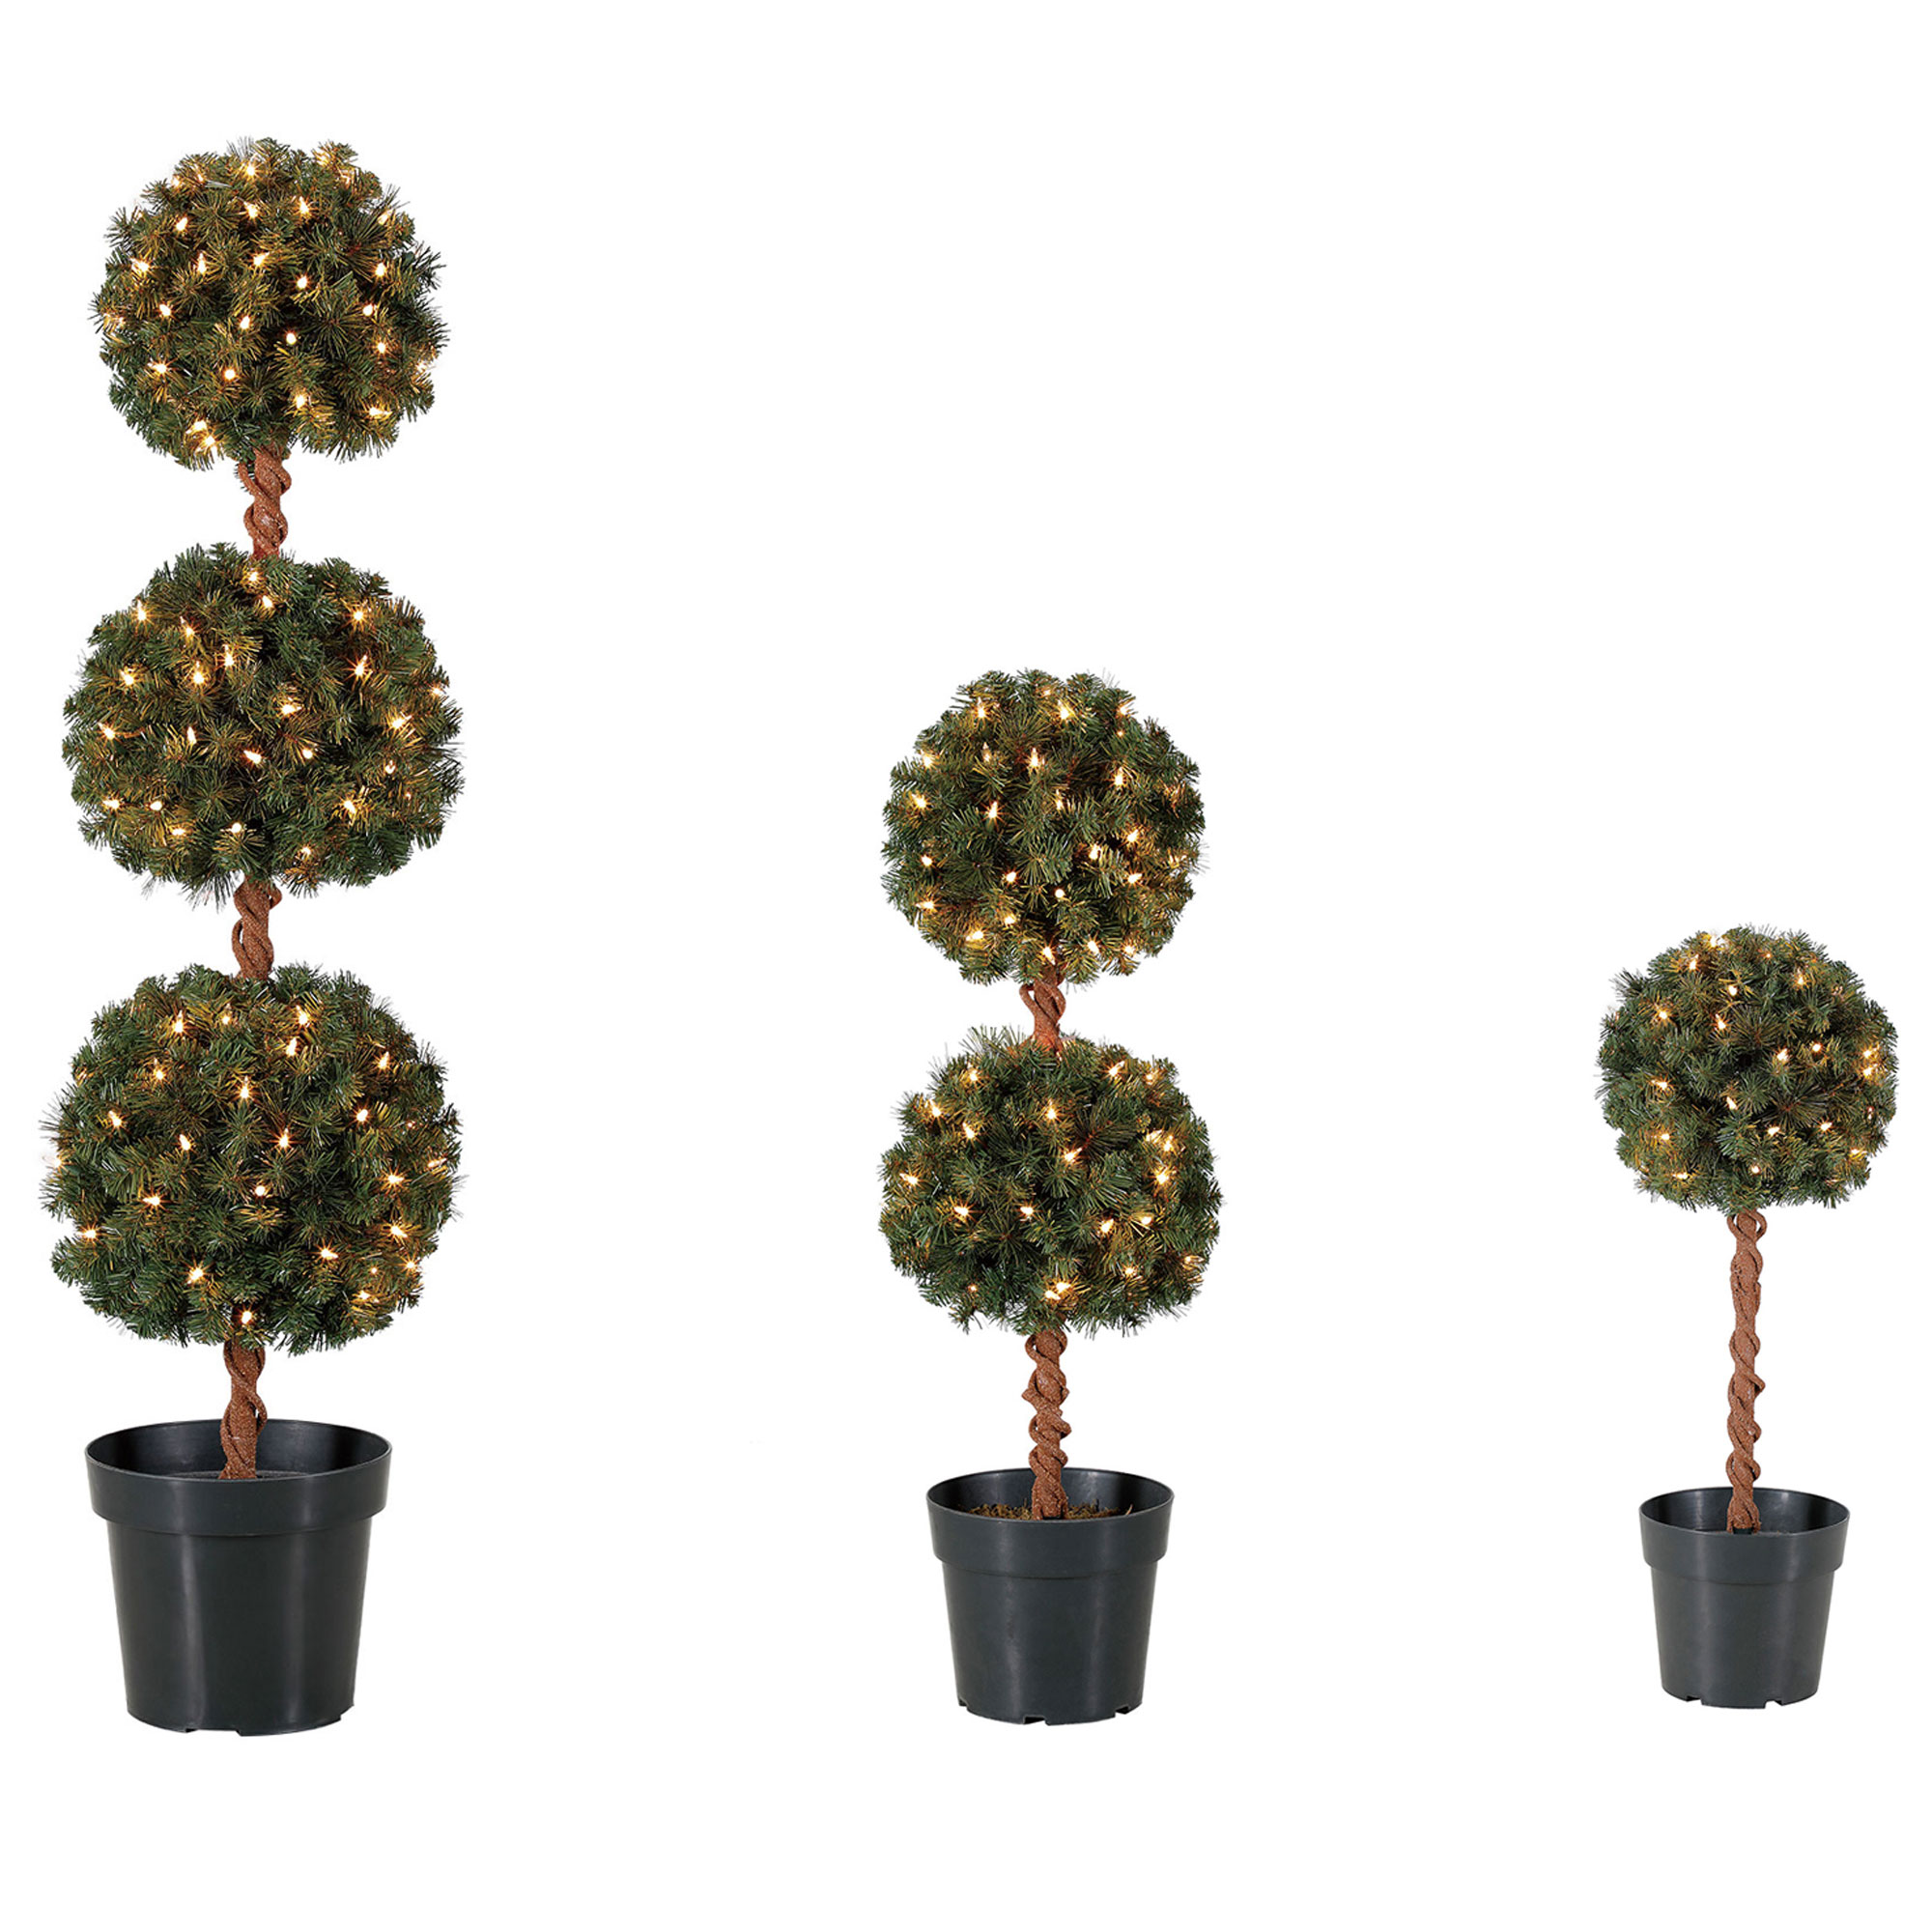 Artificial Topiaries Home Kitchen Home Decor Home Heritage 4 Foot Artificial Topiary Tree W Clear Lights For Entryway Decor Artificial Plants Flowers Viventodvere Sk